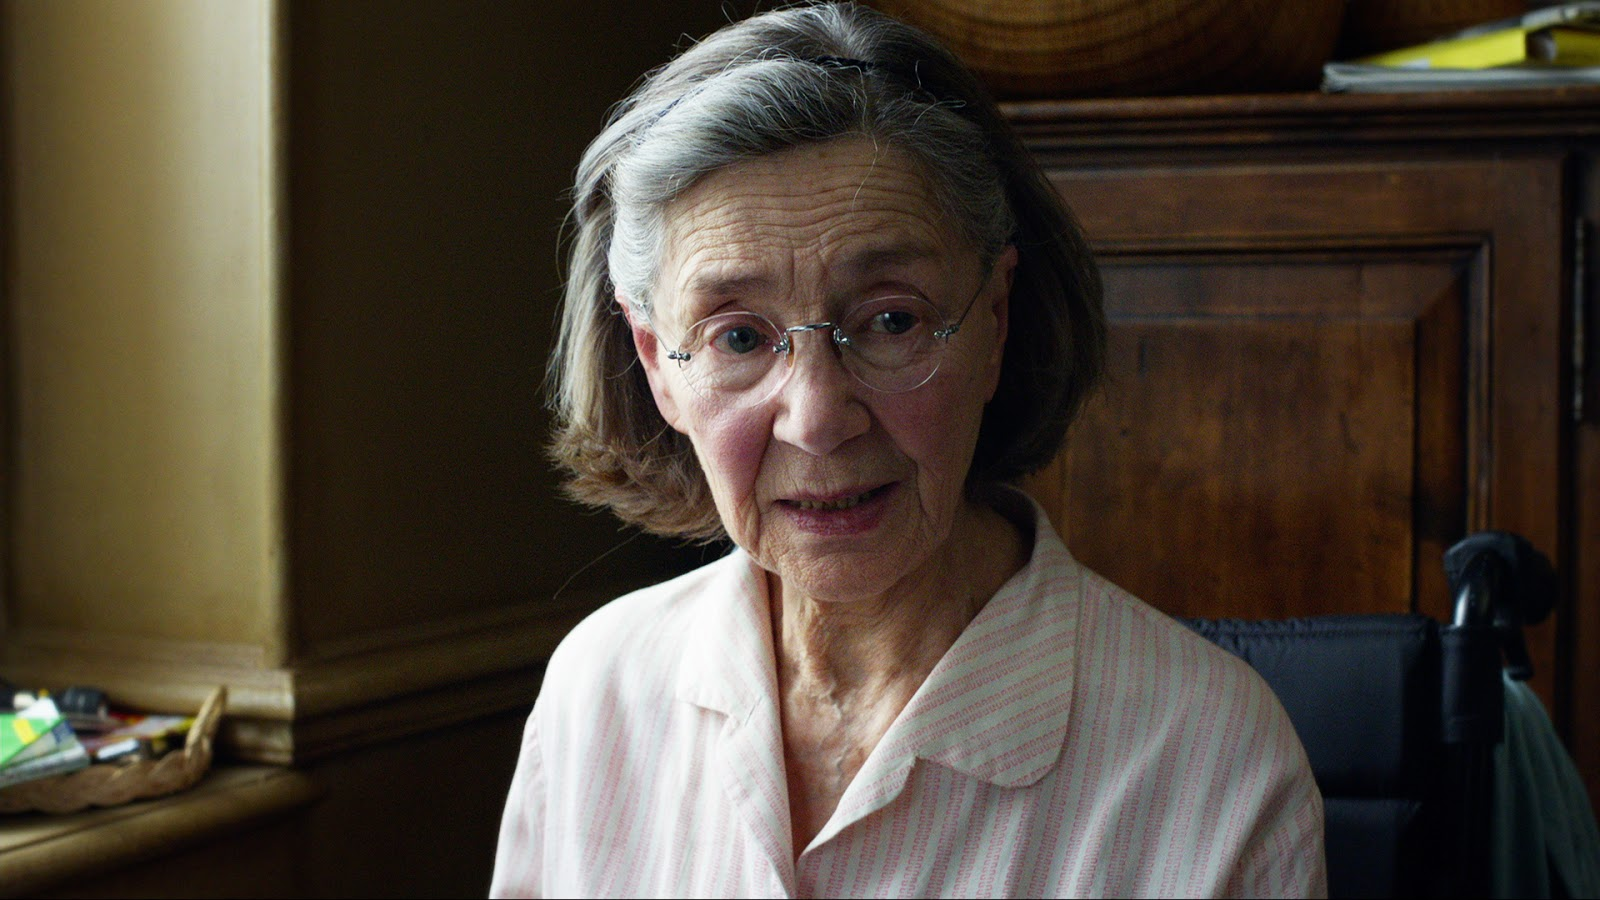 Emmanuelle-Riva-in-Amour